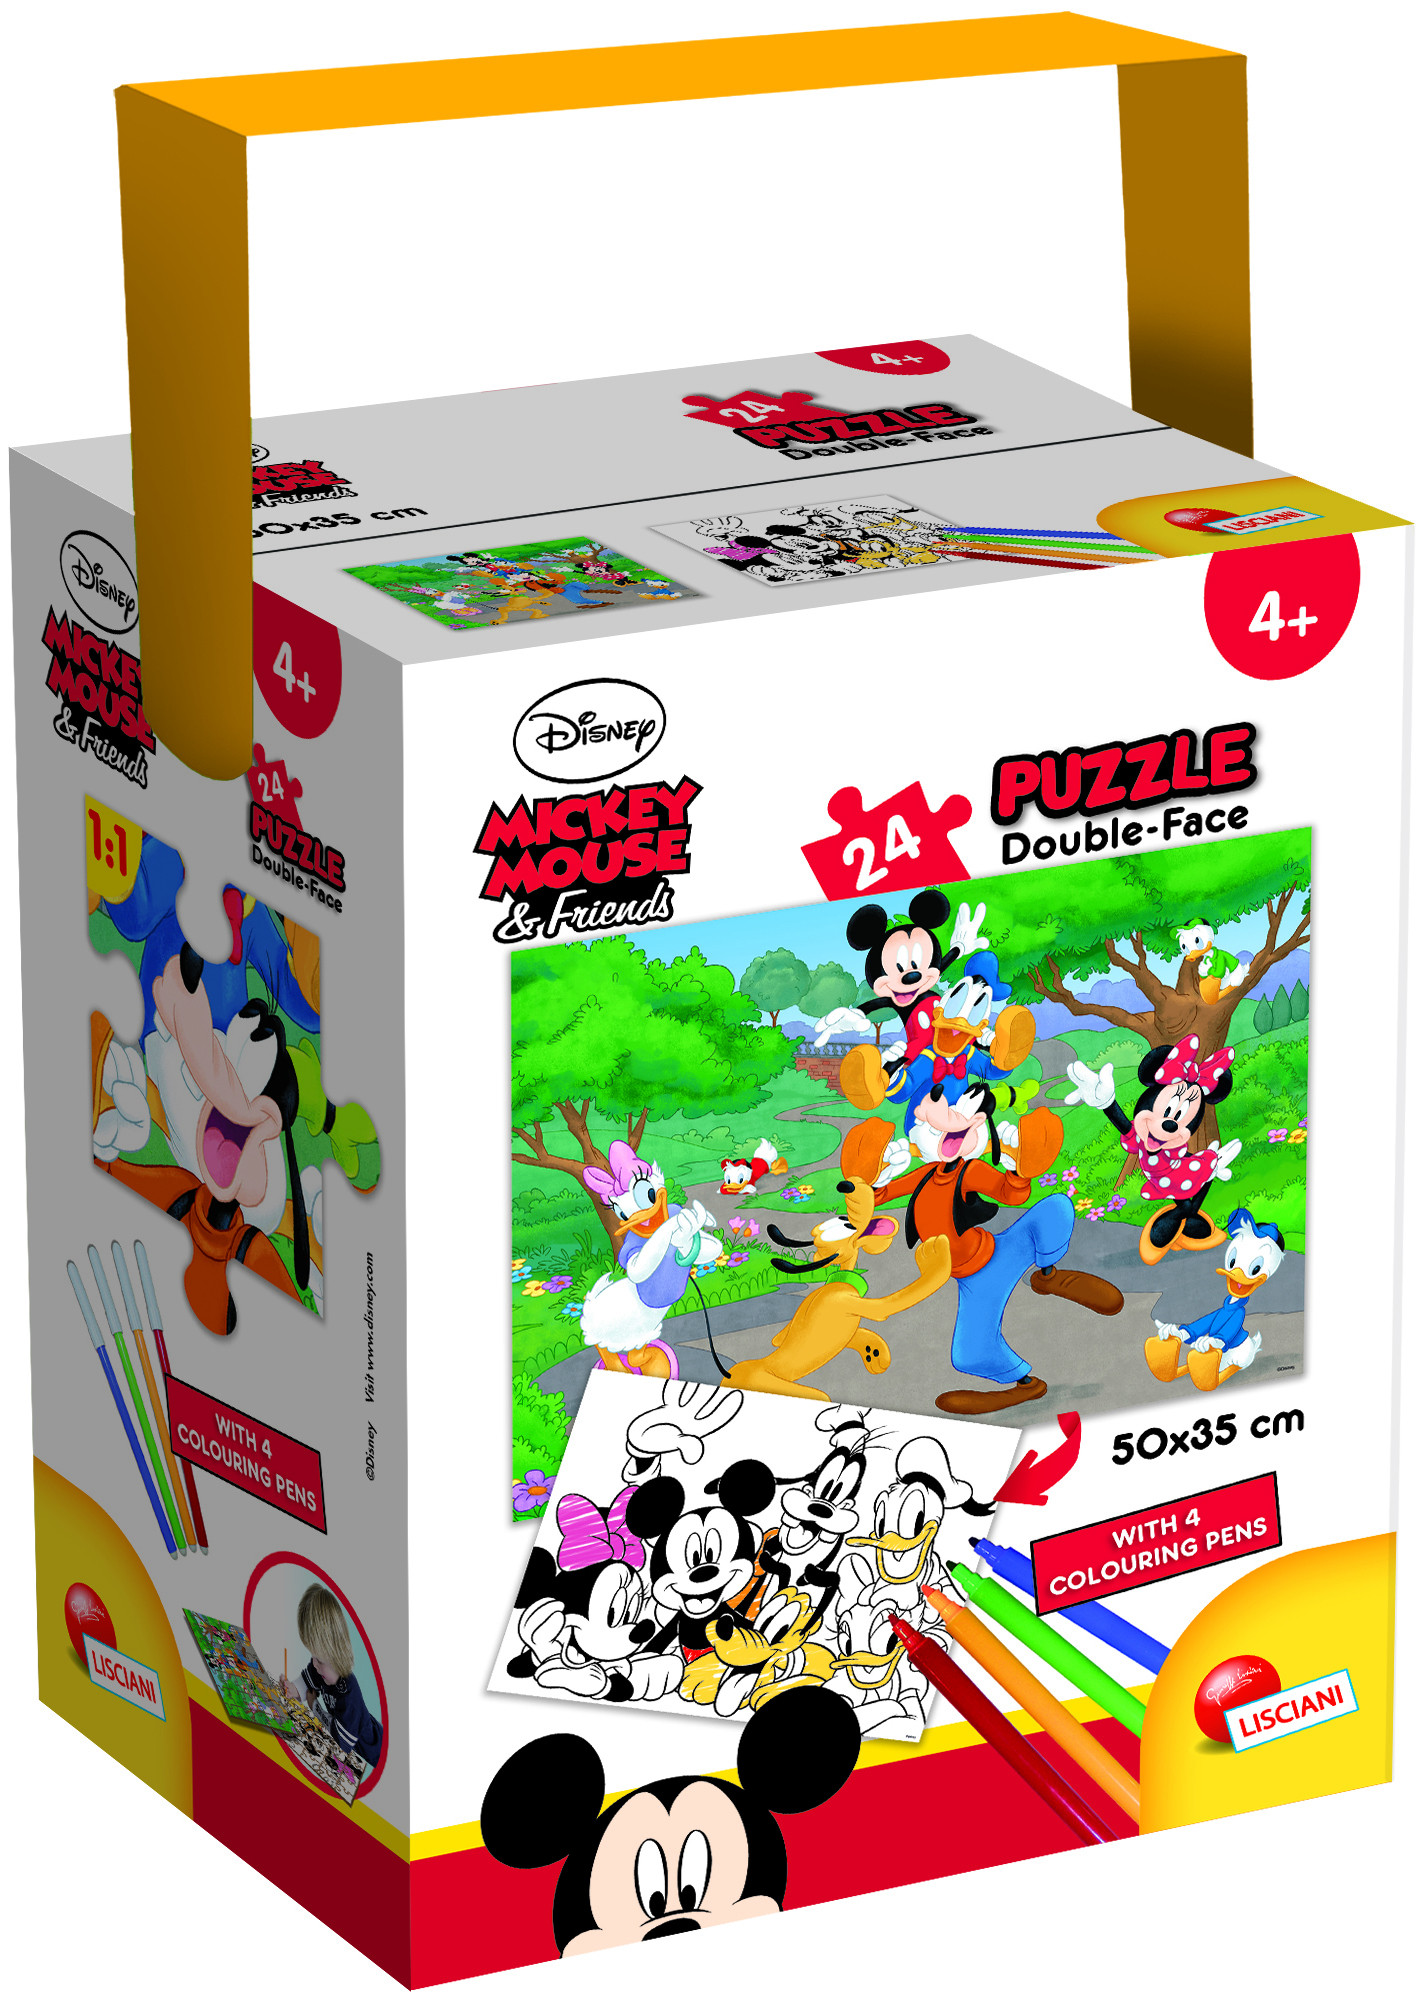 PUZZLE IN A TUB MINI 48 35X50 24 PEZZI MICKEY (65240)